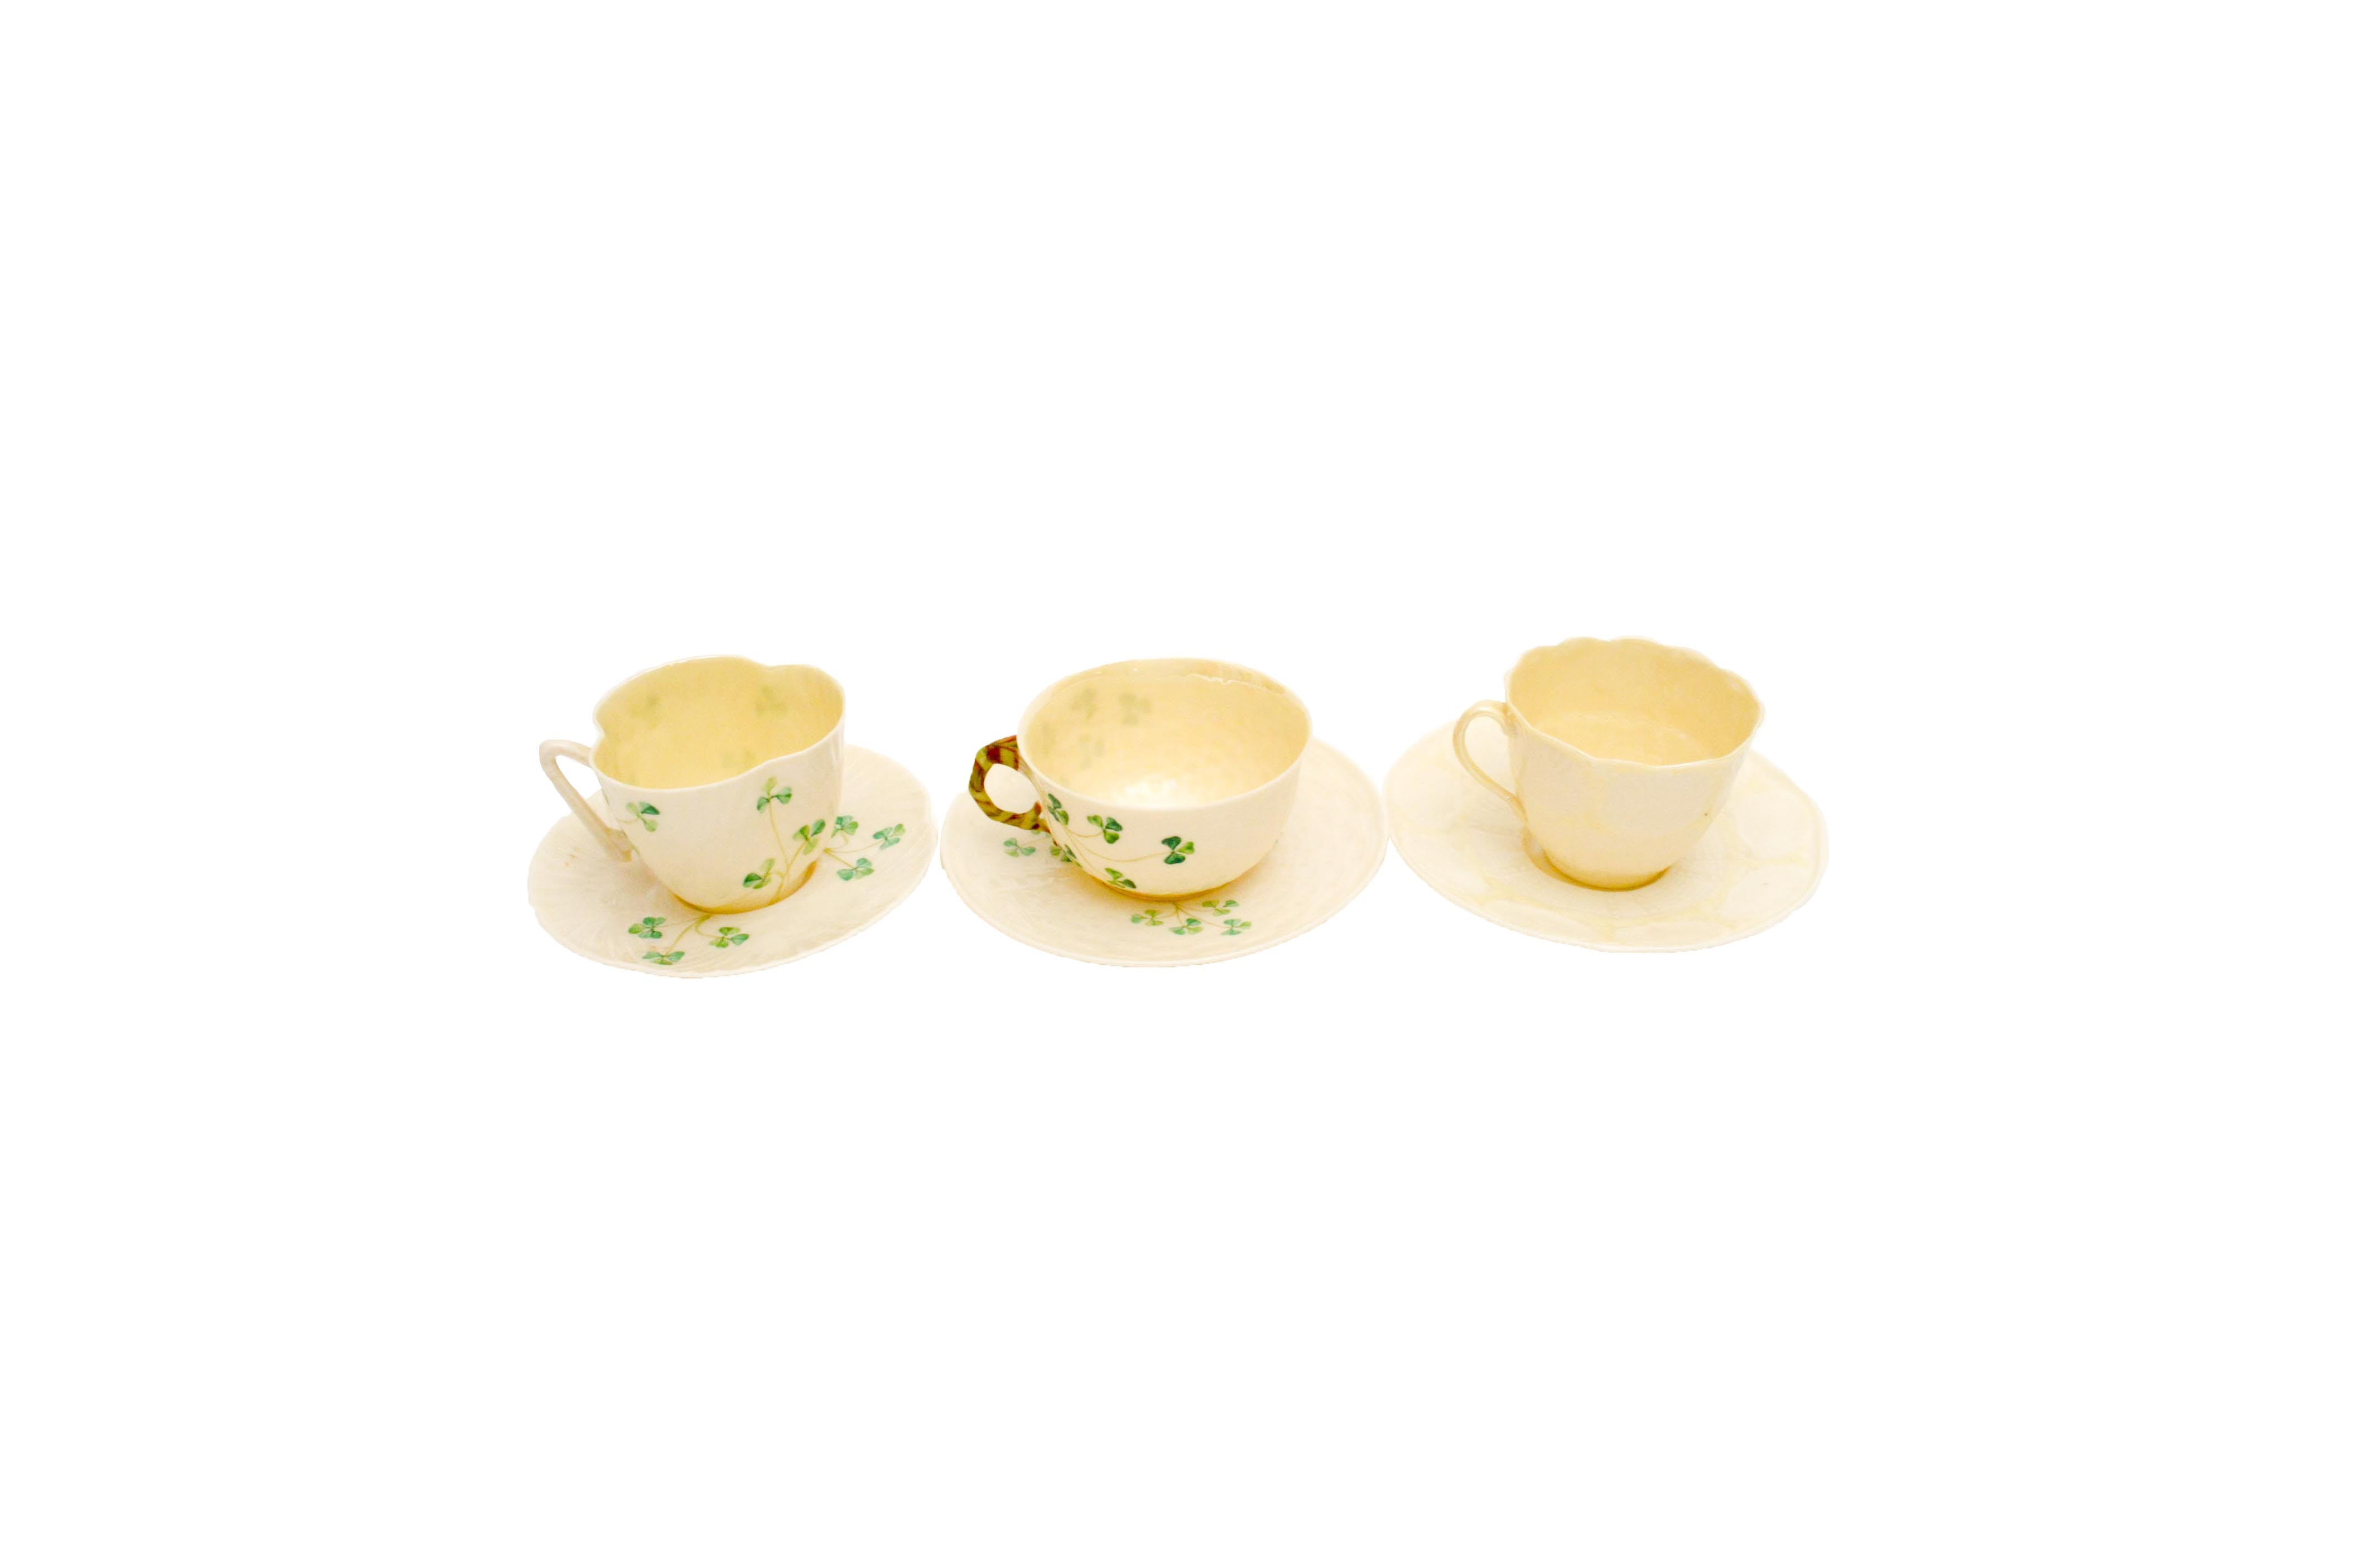 Collection of Belleek Teacups and Saucers